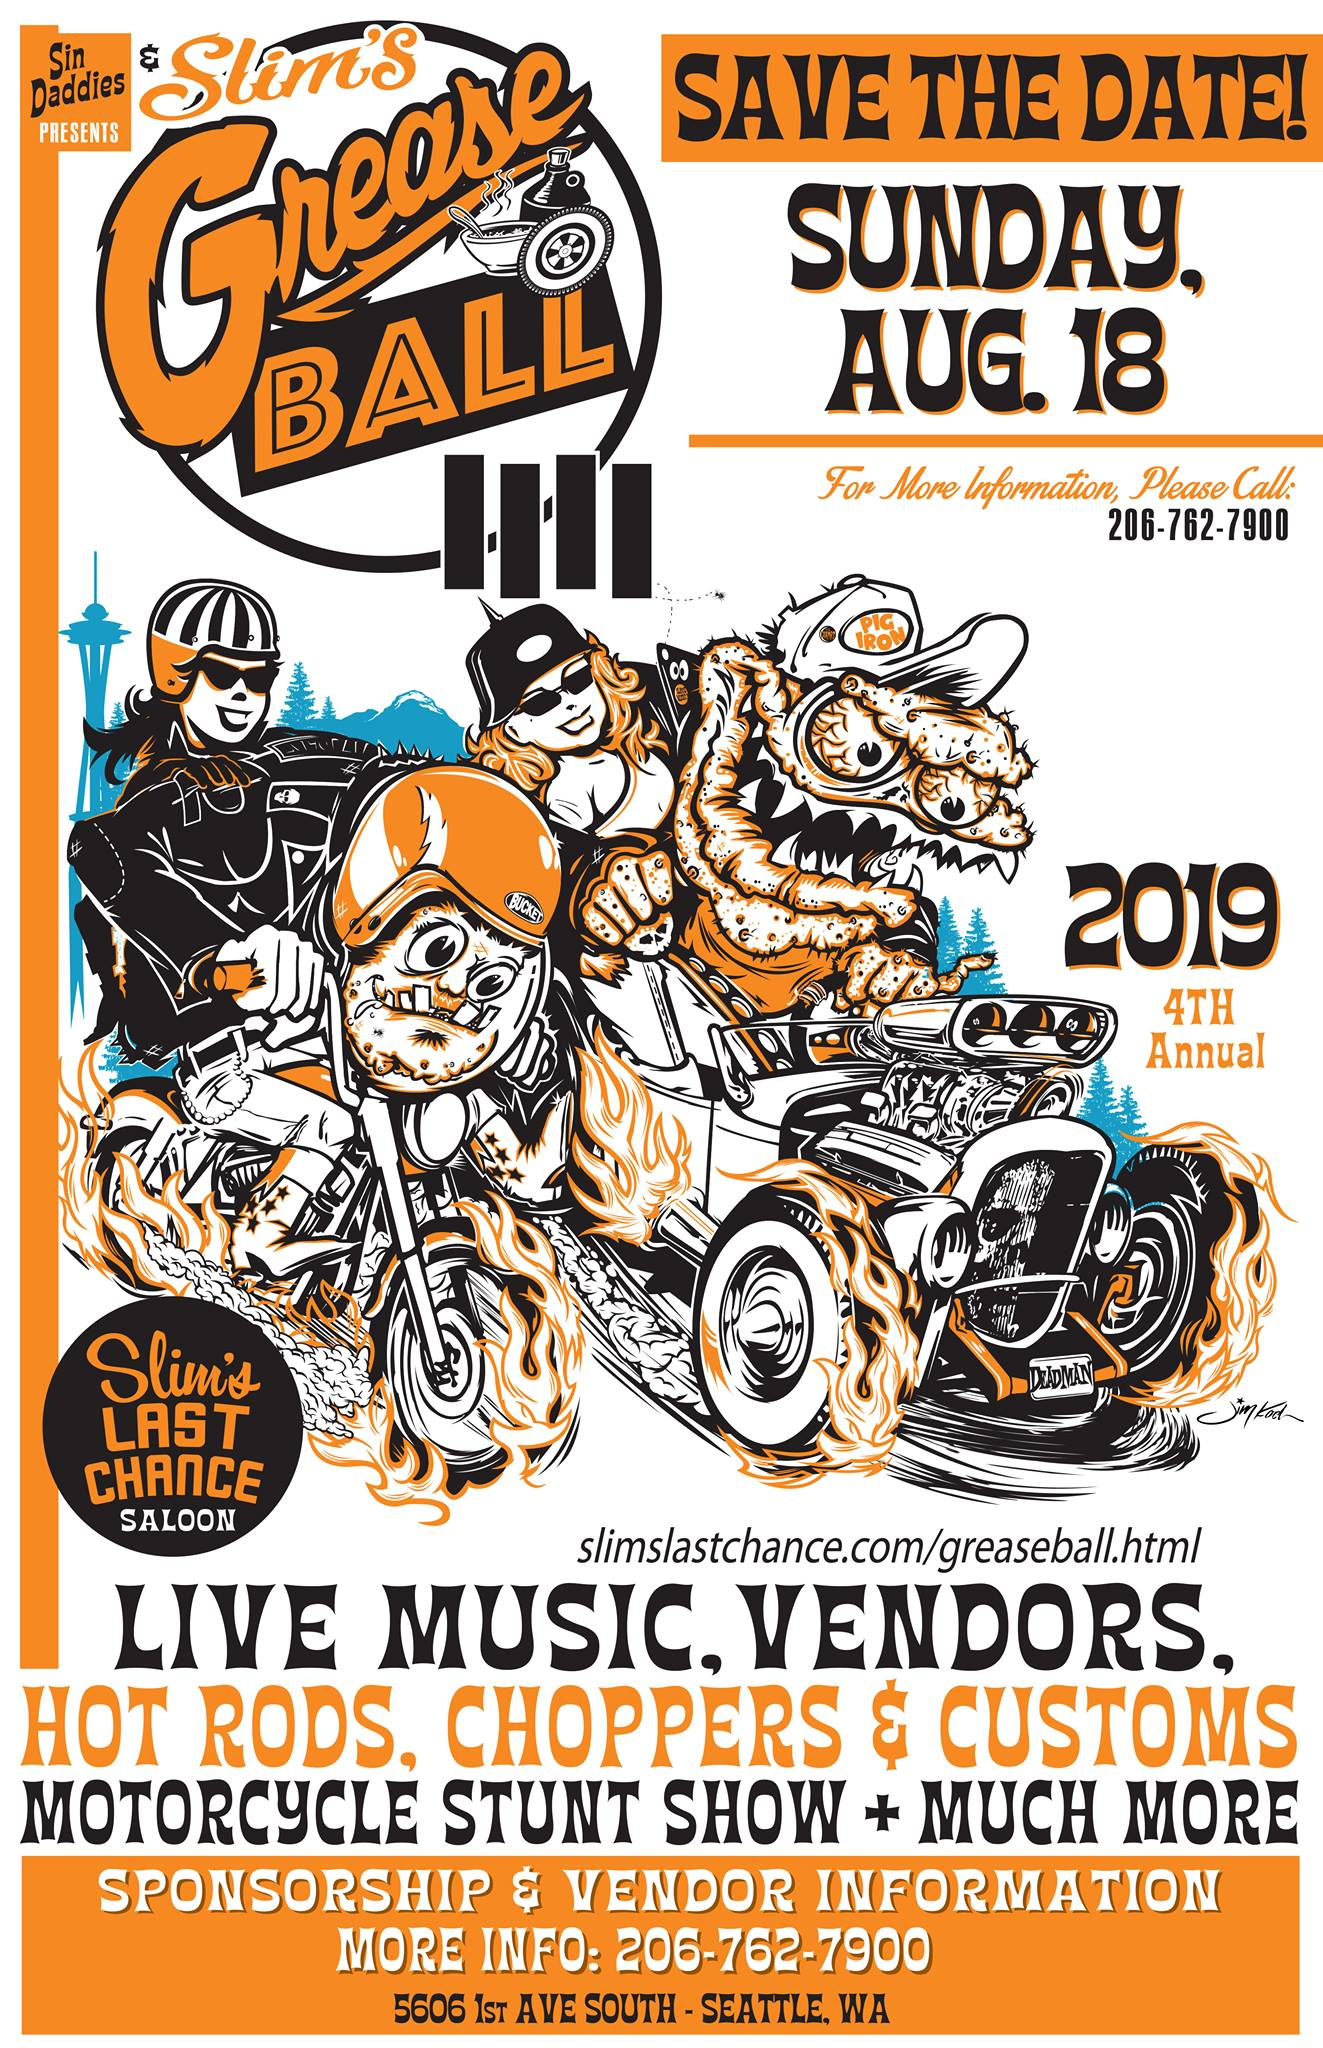 The Greaseball is an annual FREE all ages community event to showcase home built, old school hot rods, custom chops, rat rods, bobbers, vintage motorcycles, and more. We close down 1st Ave South for 3 blocks to showcase vehicles and vendors who are hand selected to make for a one of kind experience. We are honored that the Seattle Cossacks Motorcycle Team will be returning for another unforgettable performance. On the Slim's Flatbed stage we will have music by musicians TBA and MC'd by Seattle's own DJ HUBBA HUBBA.